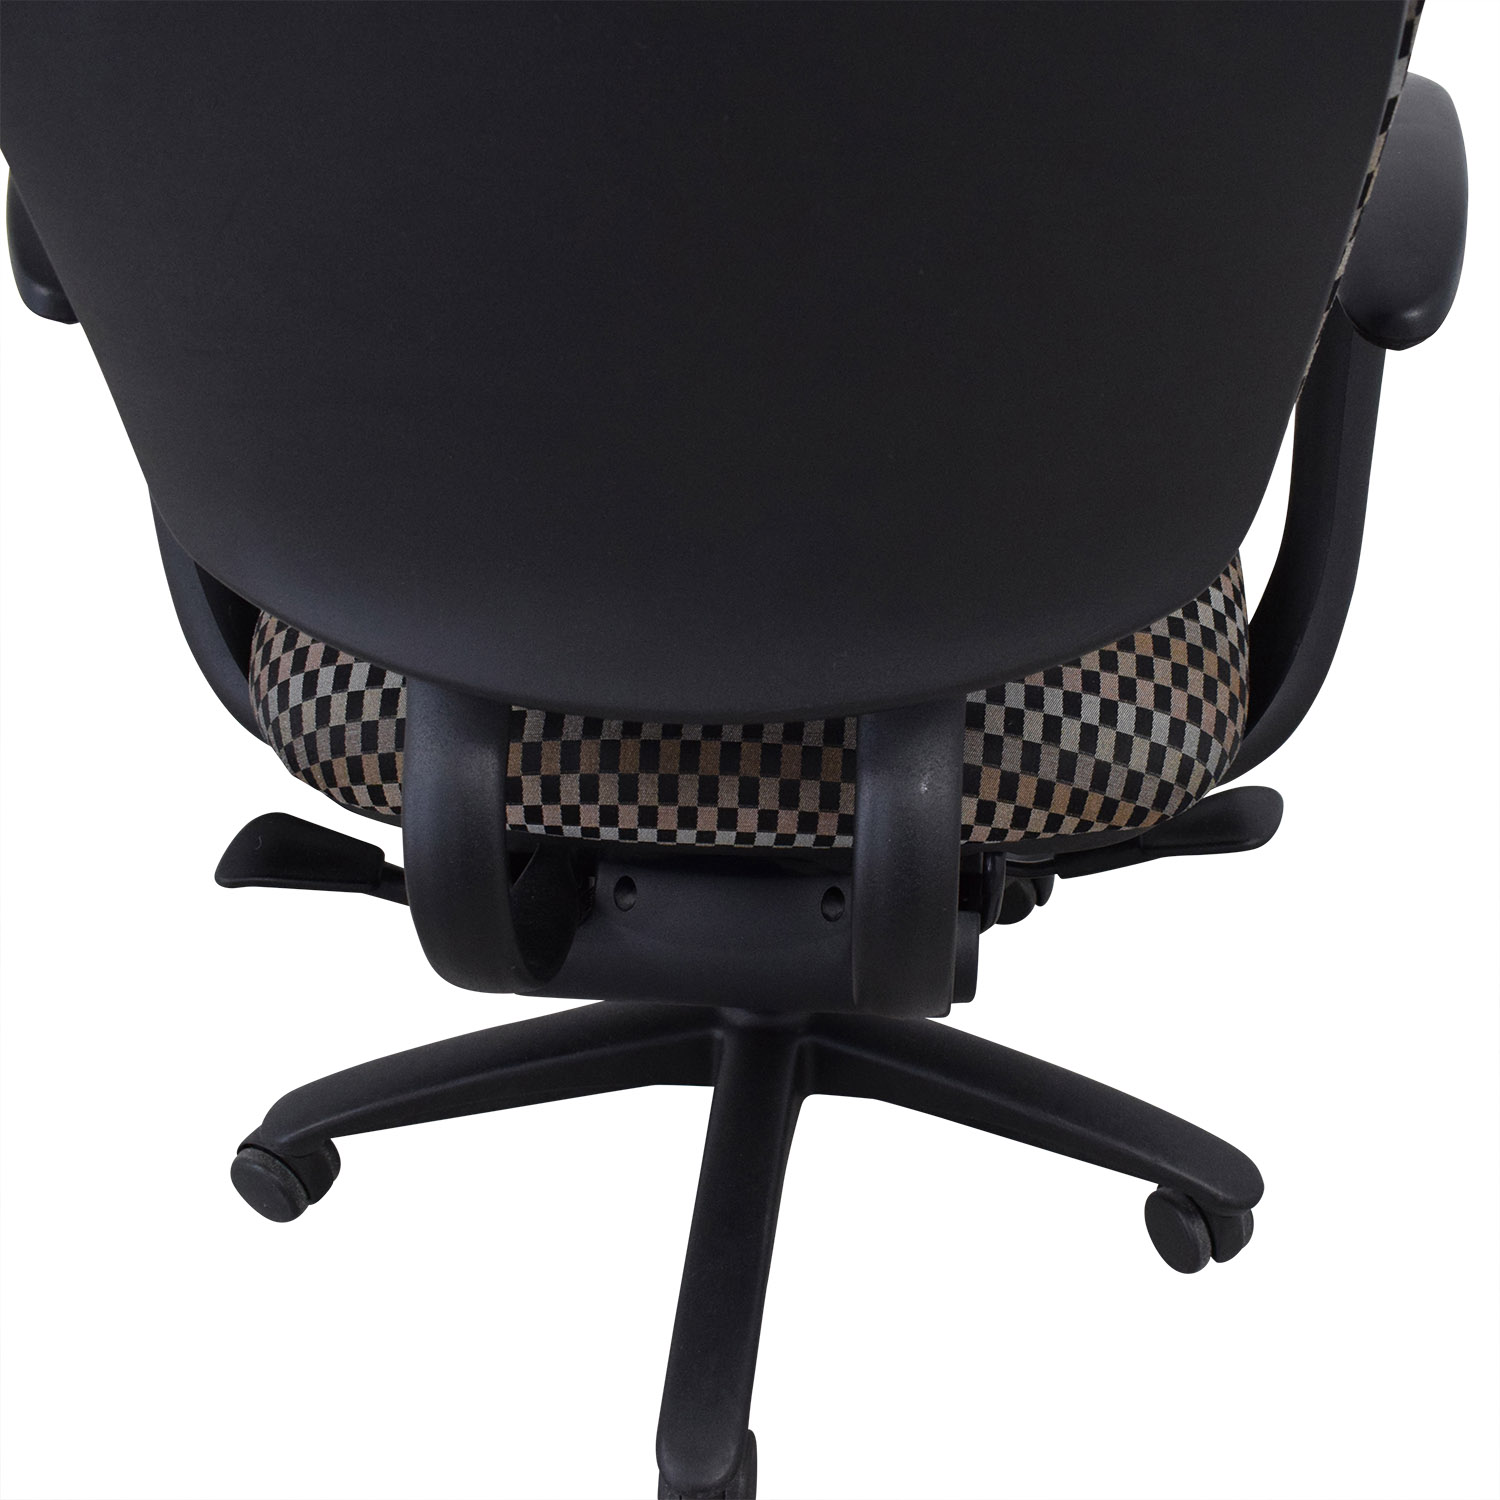 Haworth Haworth Improv Office Desk Chair ma